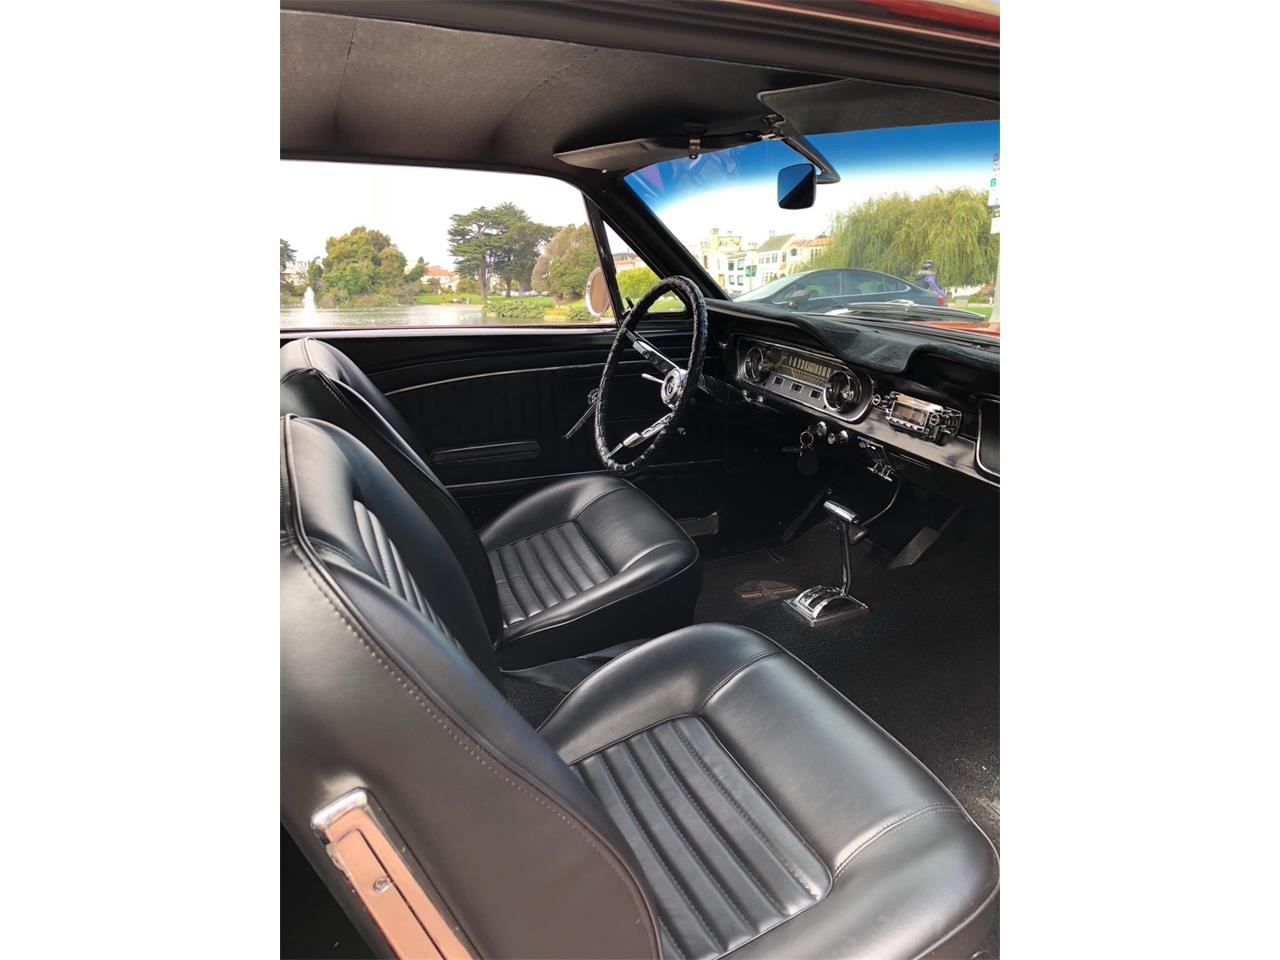 Large Picture of 1965 Mustang located in San Francisco California - $25,000.00 - OJ2O